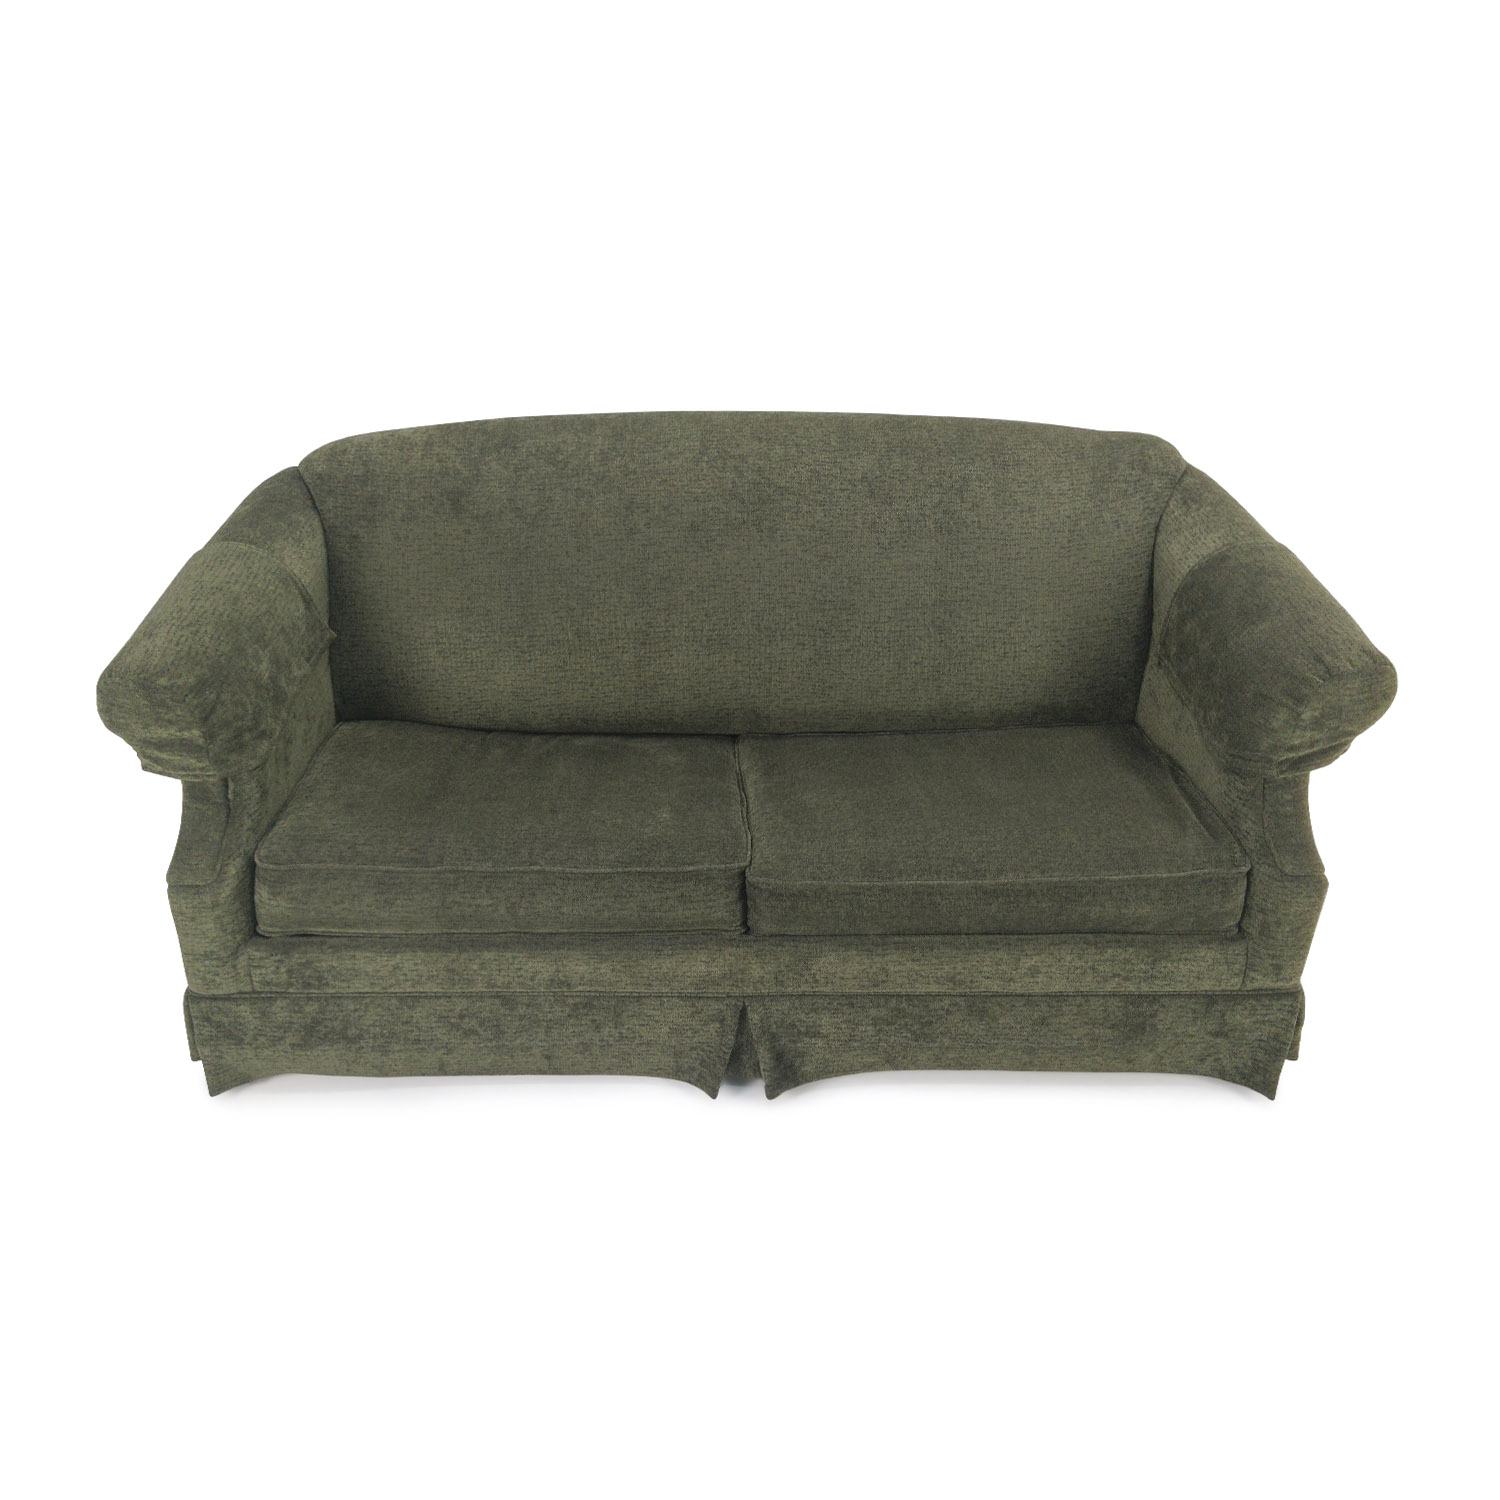 Custom Green Fabric Sofa with Pullout Frame on sale